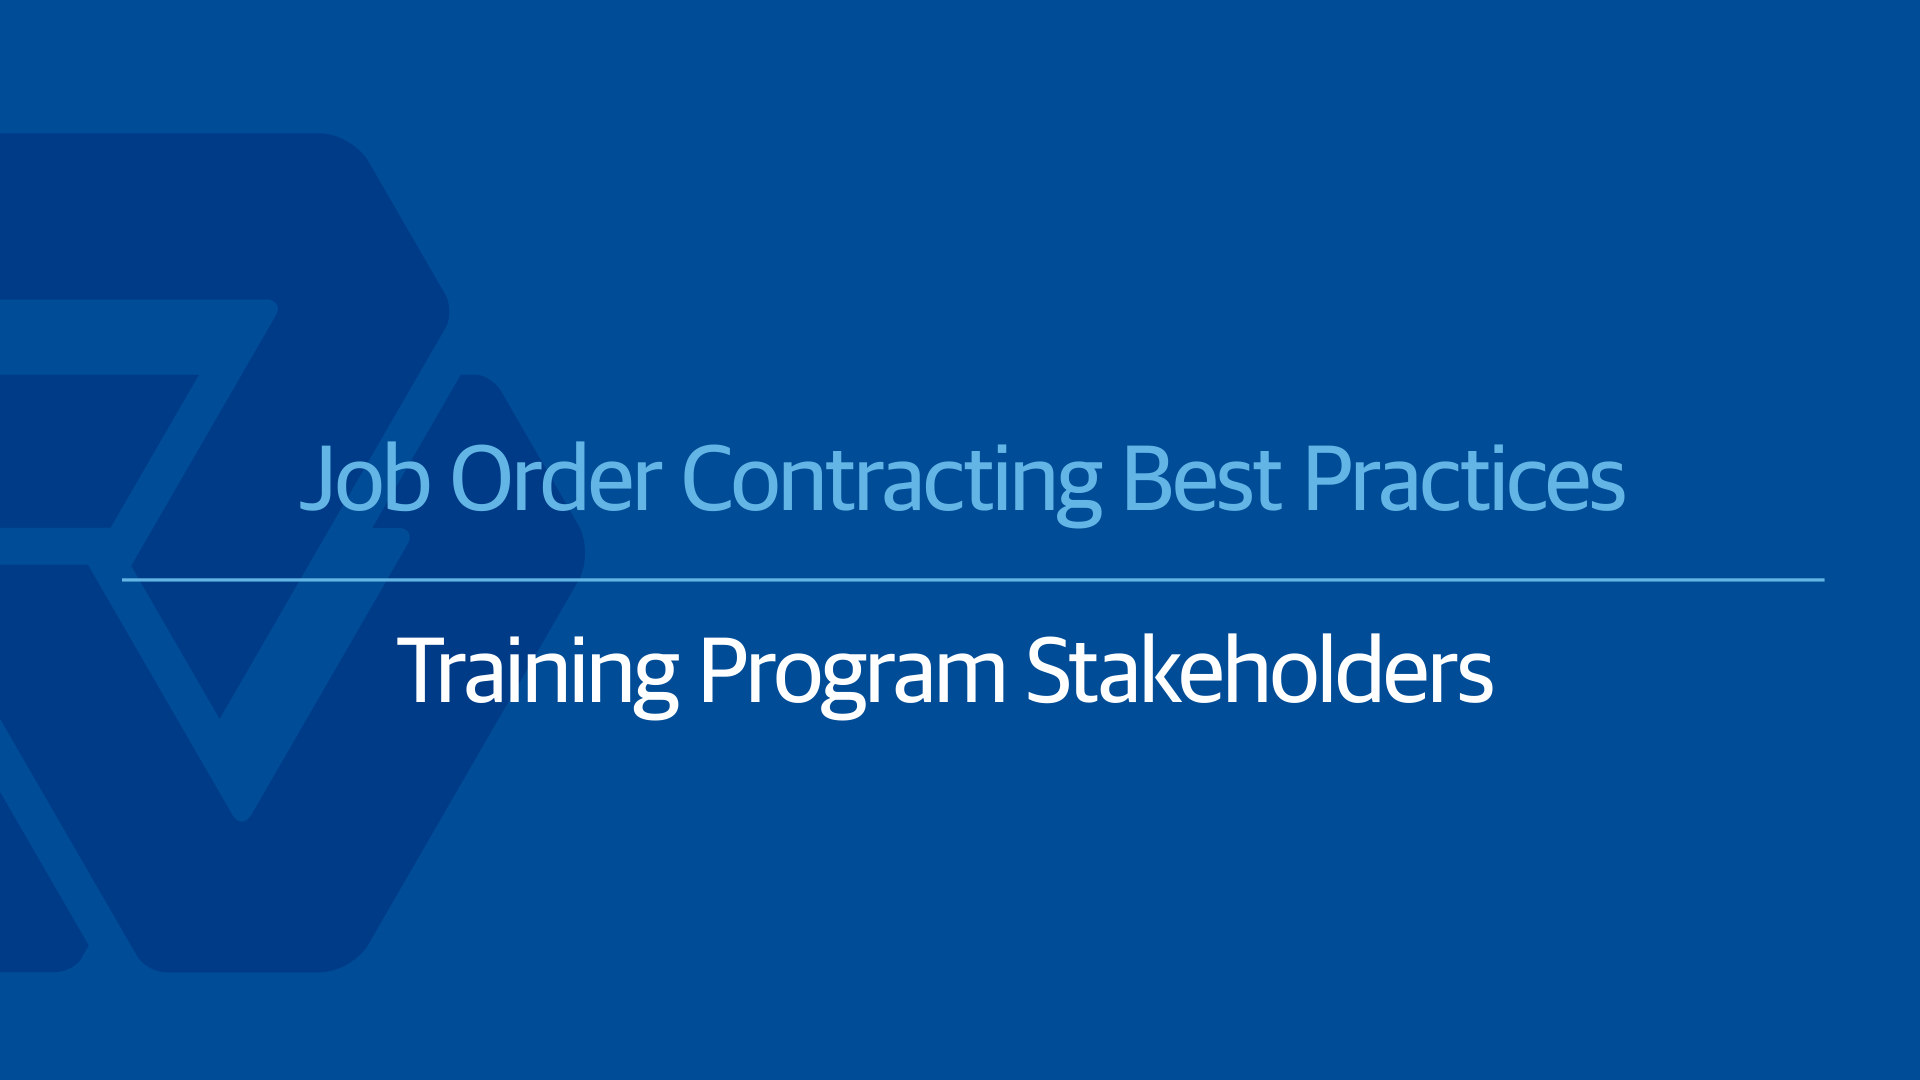 Job Order Contracting Best Practices: A Quality JOC Education